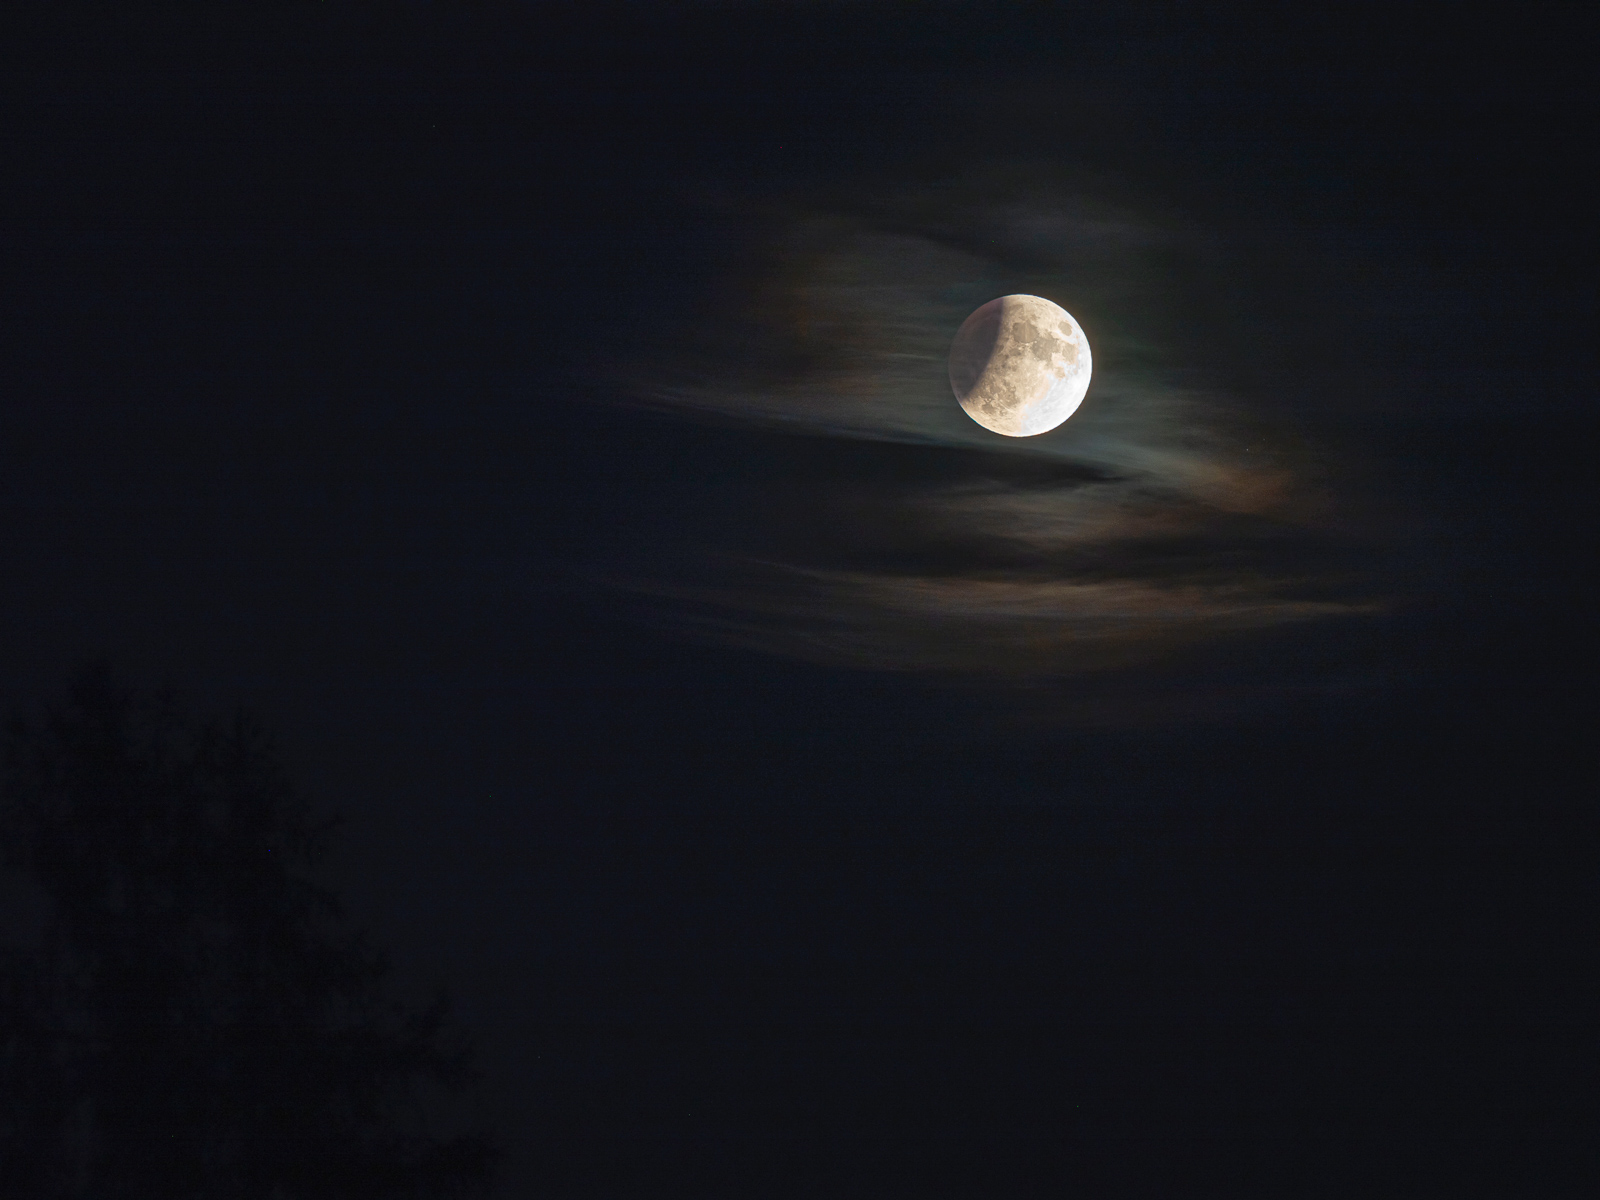 Partial Lunar Eclipse 3 - the dark side of the moon - Stäfa, Switzerland